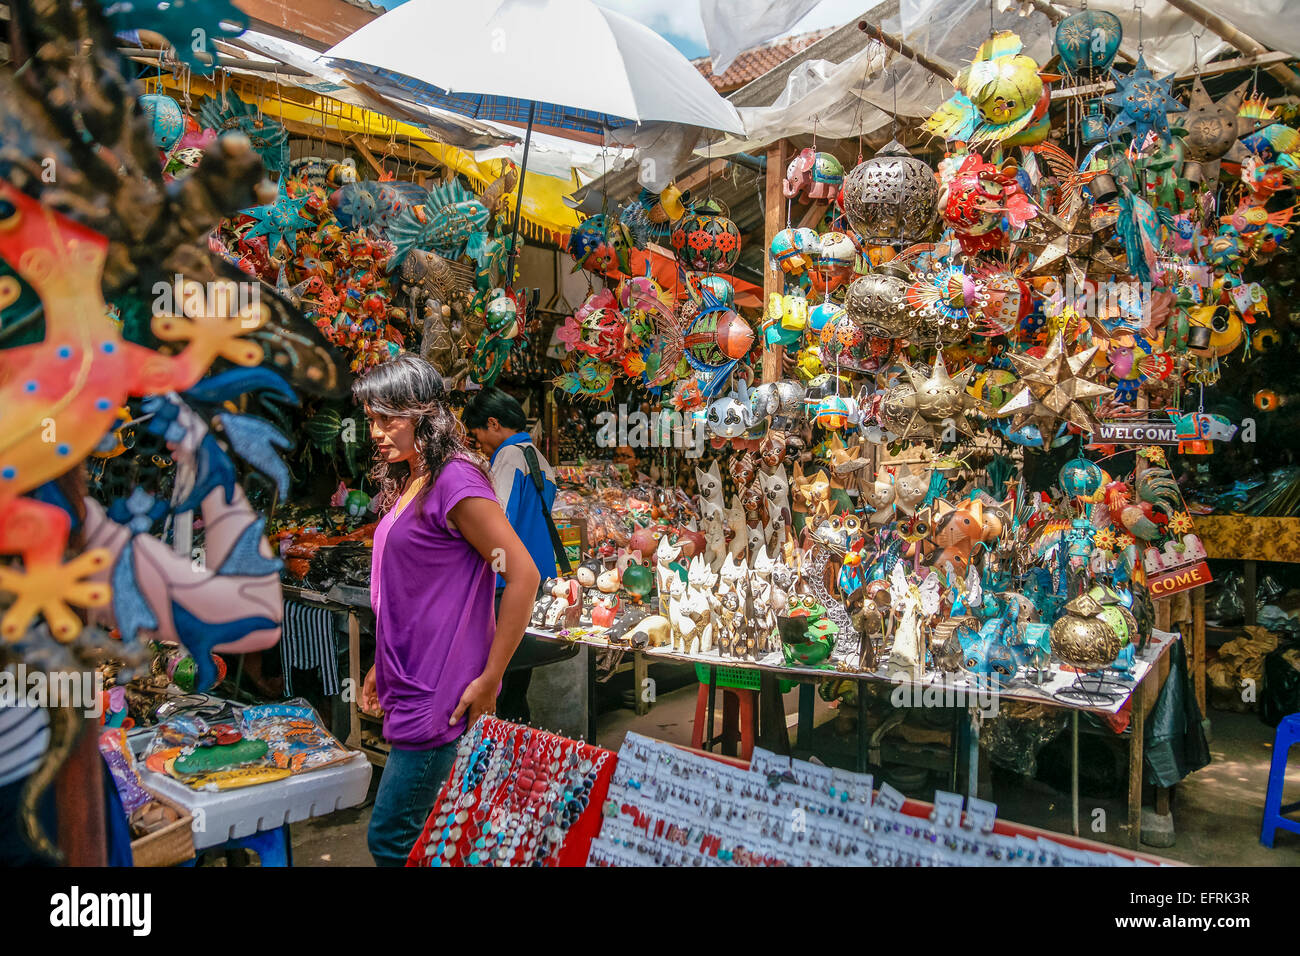 Souvenir shop in Ubud, Bali, Indonesia - Stock Image